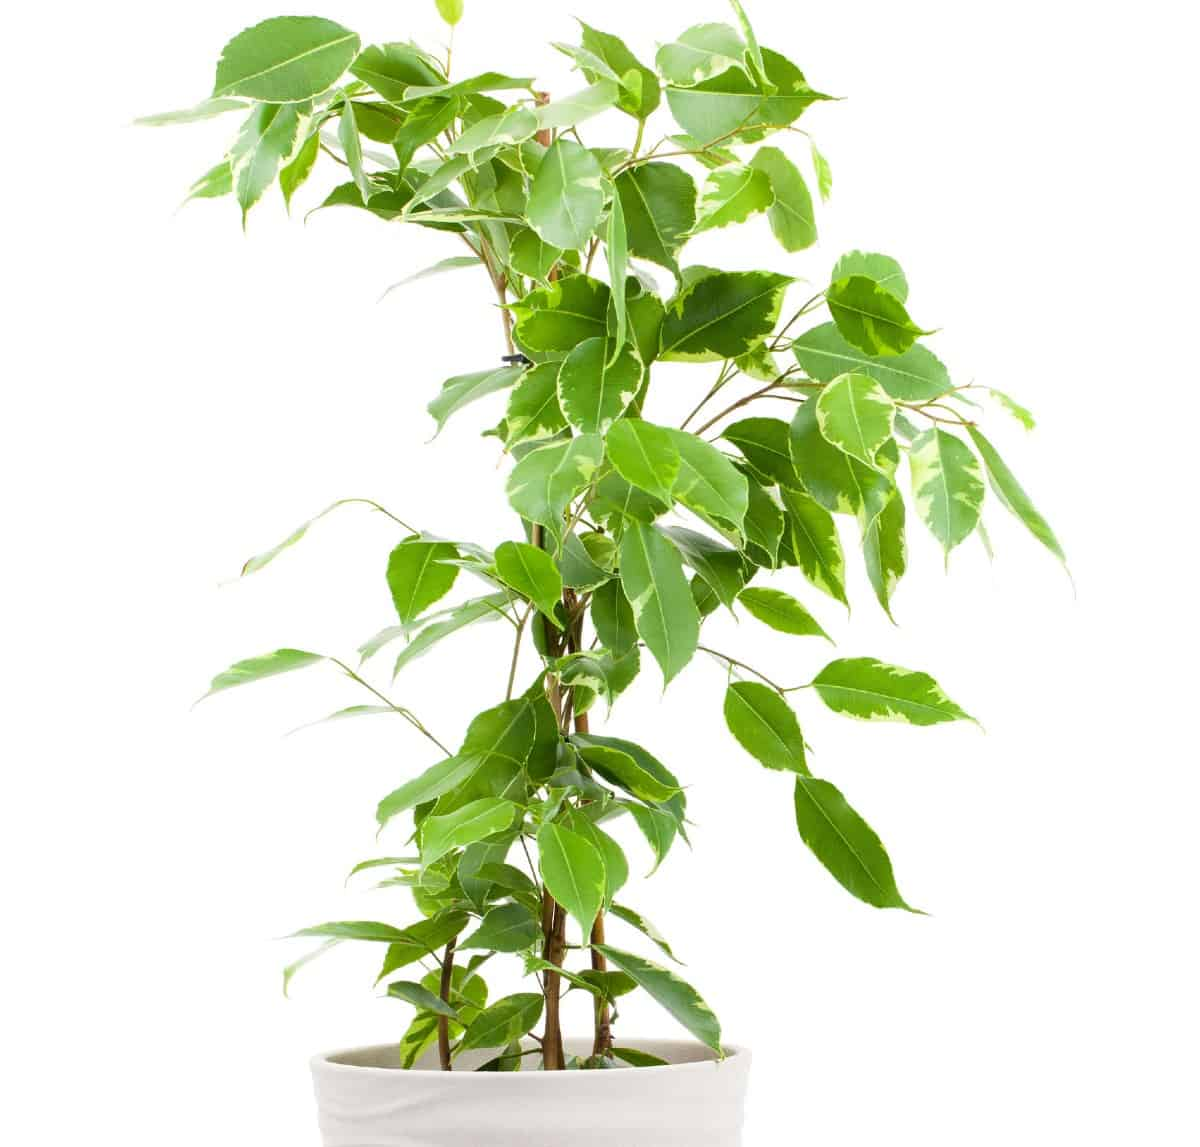 Ficus is also known as a weeping fig tree.